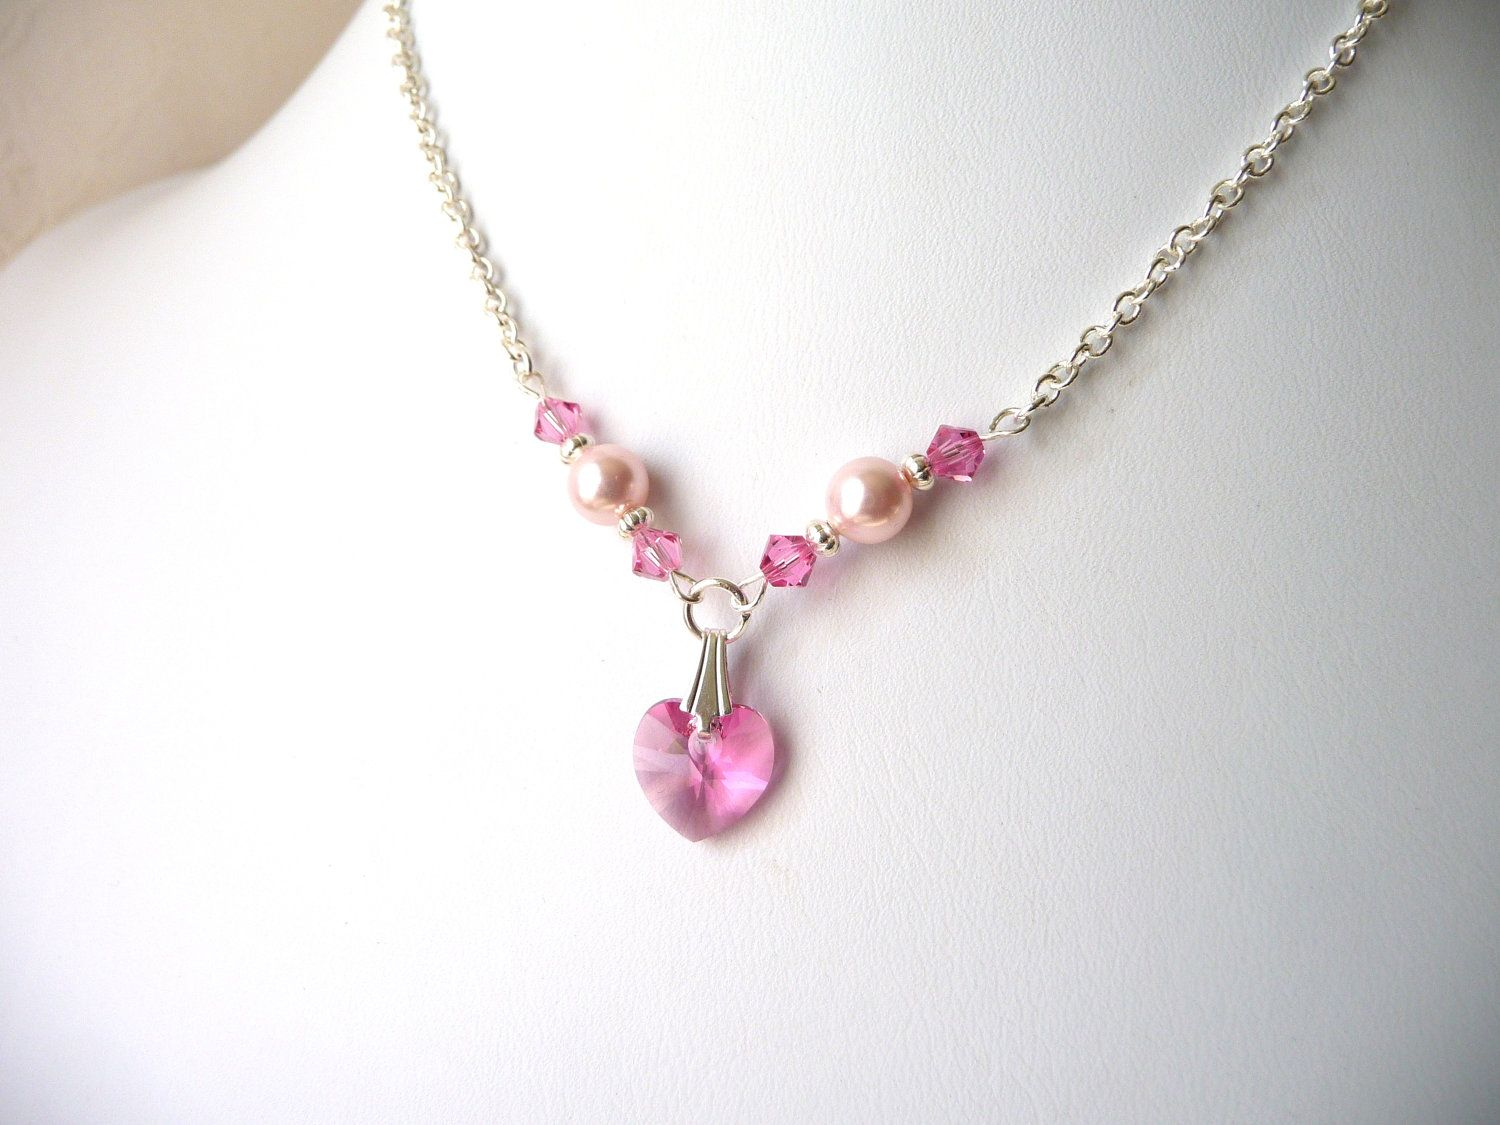 Little gils new jewellery for children first birthday gift ideas - Childrens Heart Necklace Pink Heart Necklace Kids Jewelry Necklace Junior Bridesmaid Jewelry Gift For Tween Girl Gift For Child Girl